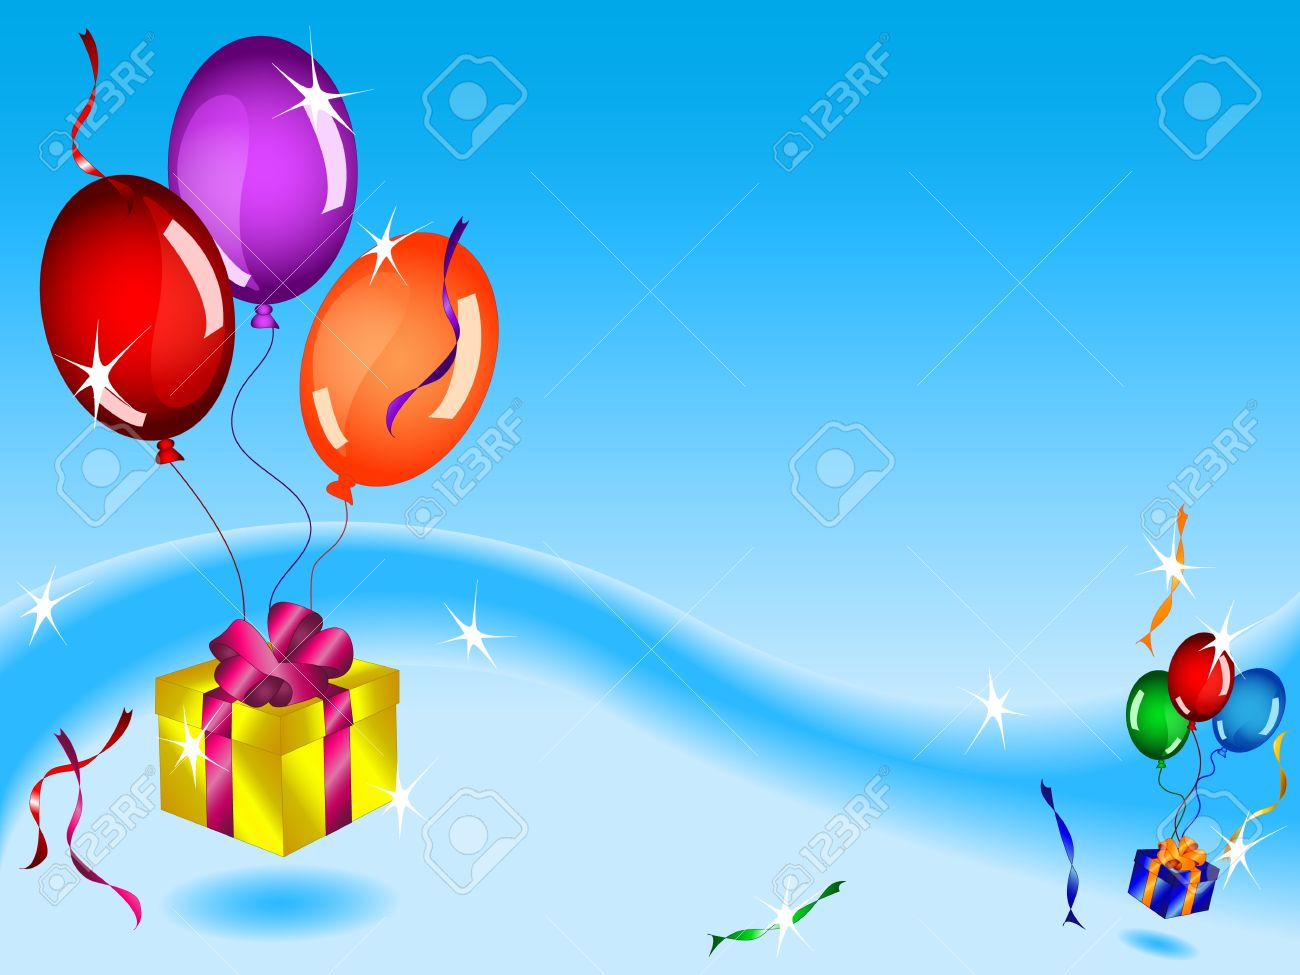 Fun Colorful Birthday Card Or Background With Floating Gifts Balloons And Ribbons In Blue Sky